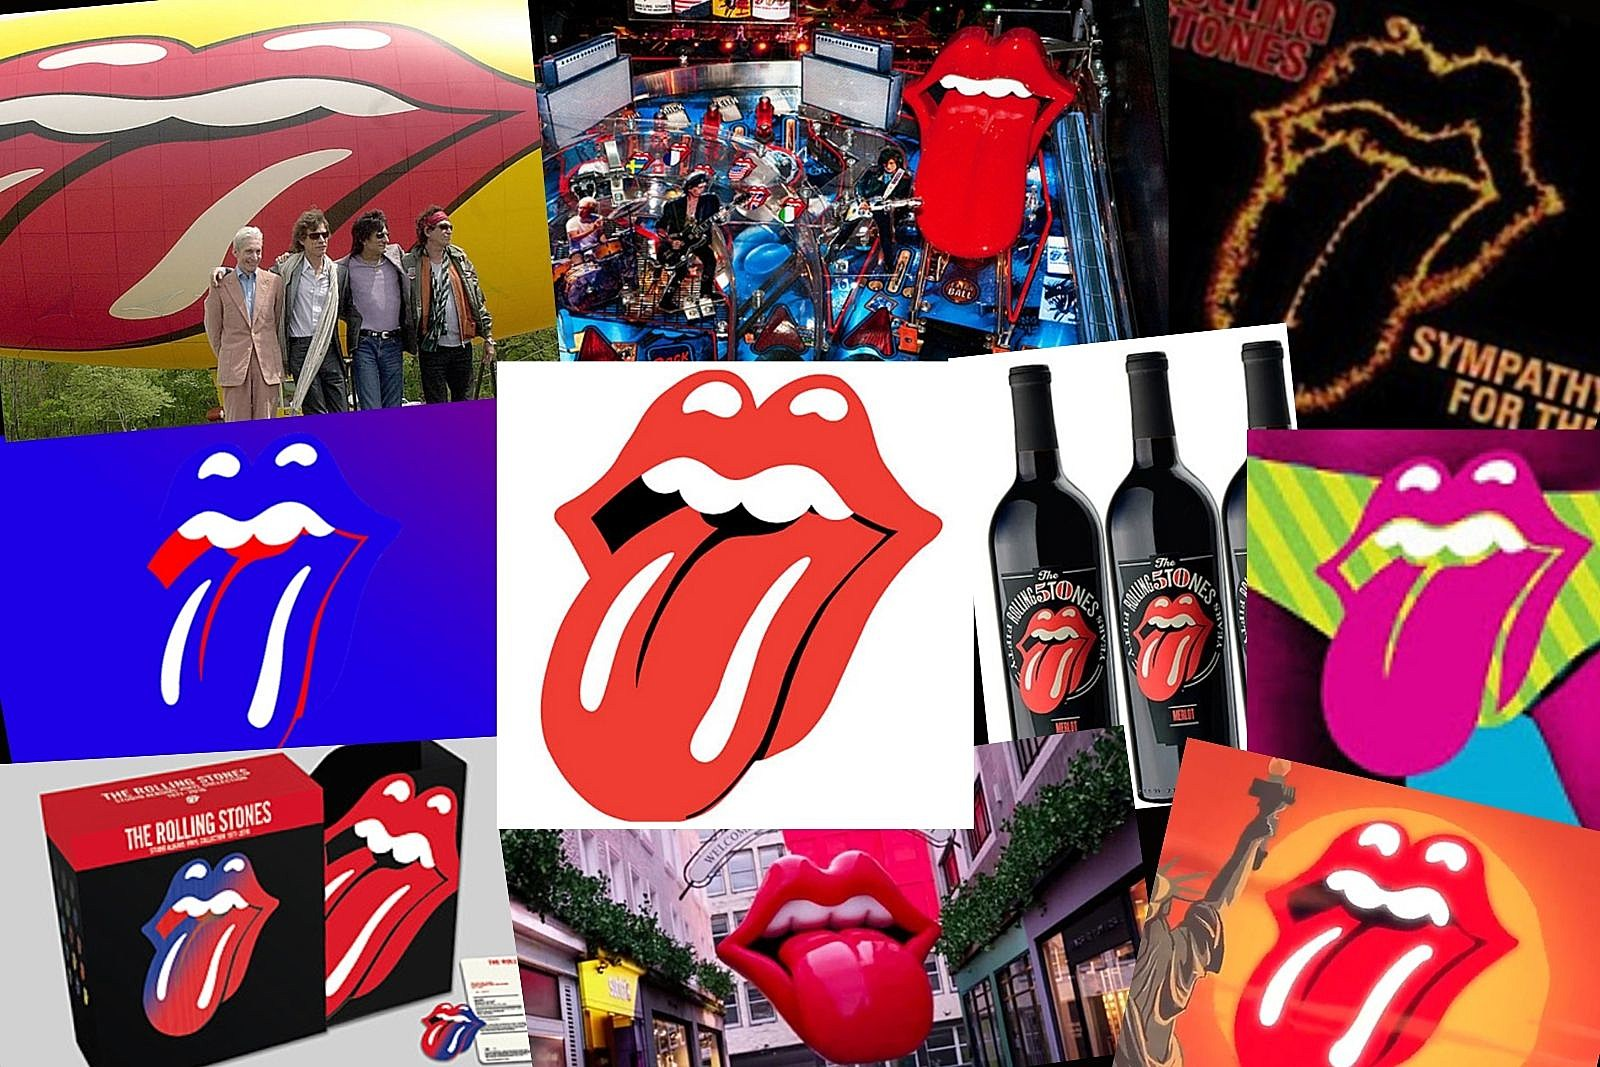 How the Rolling Stones' Tongue and Lips Logo Was Invented